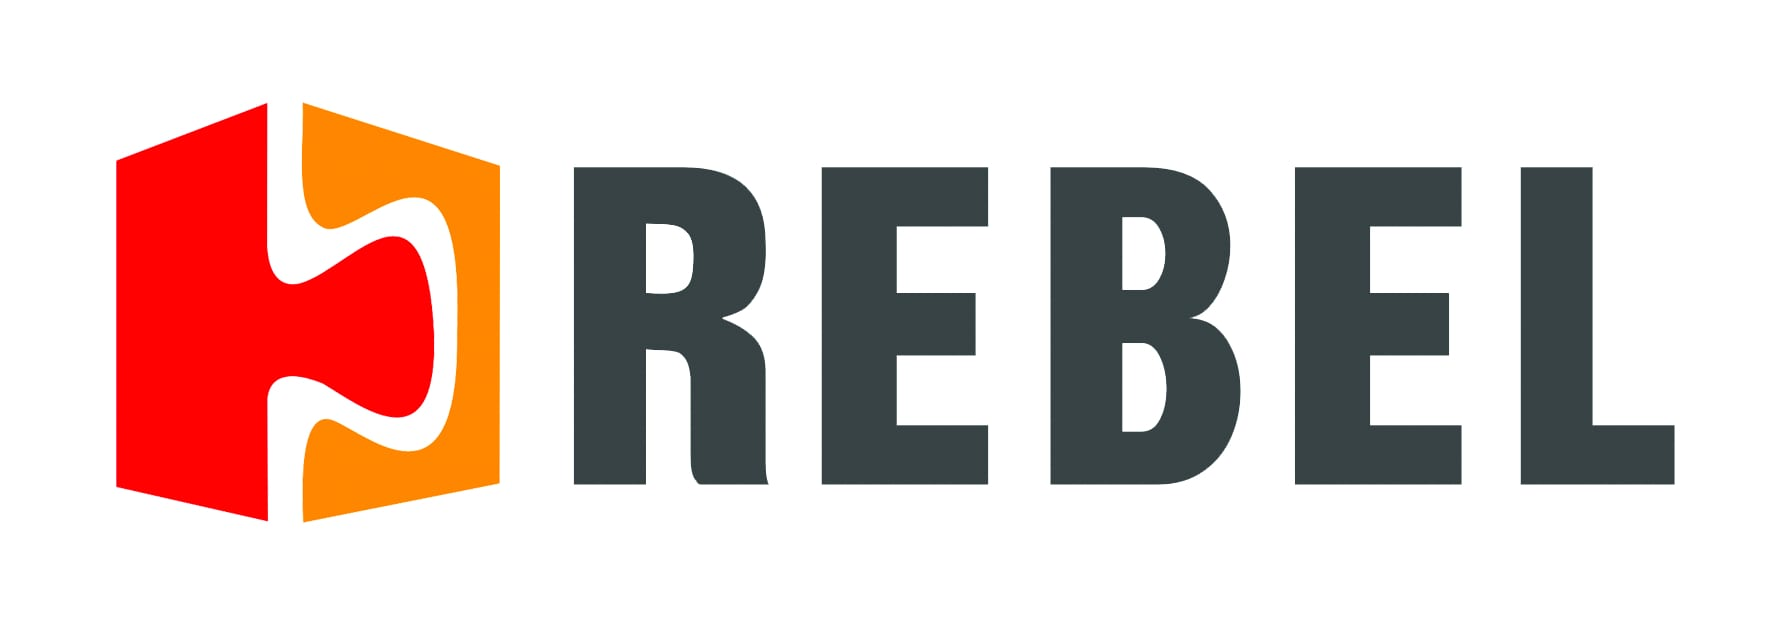 logo REBEL